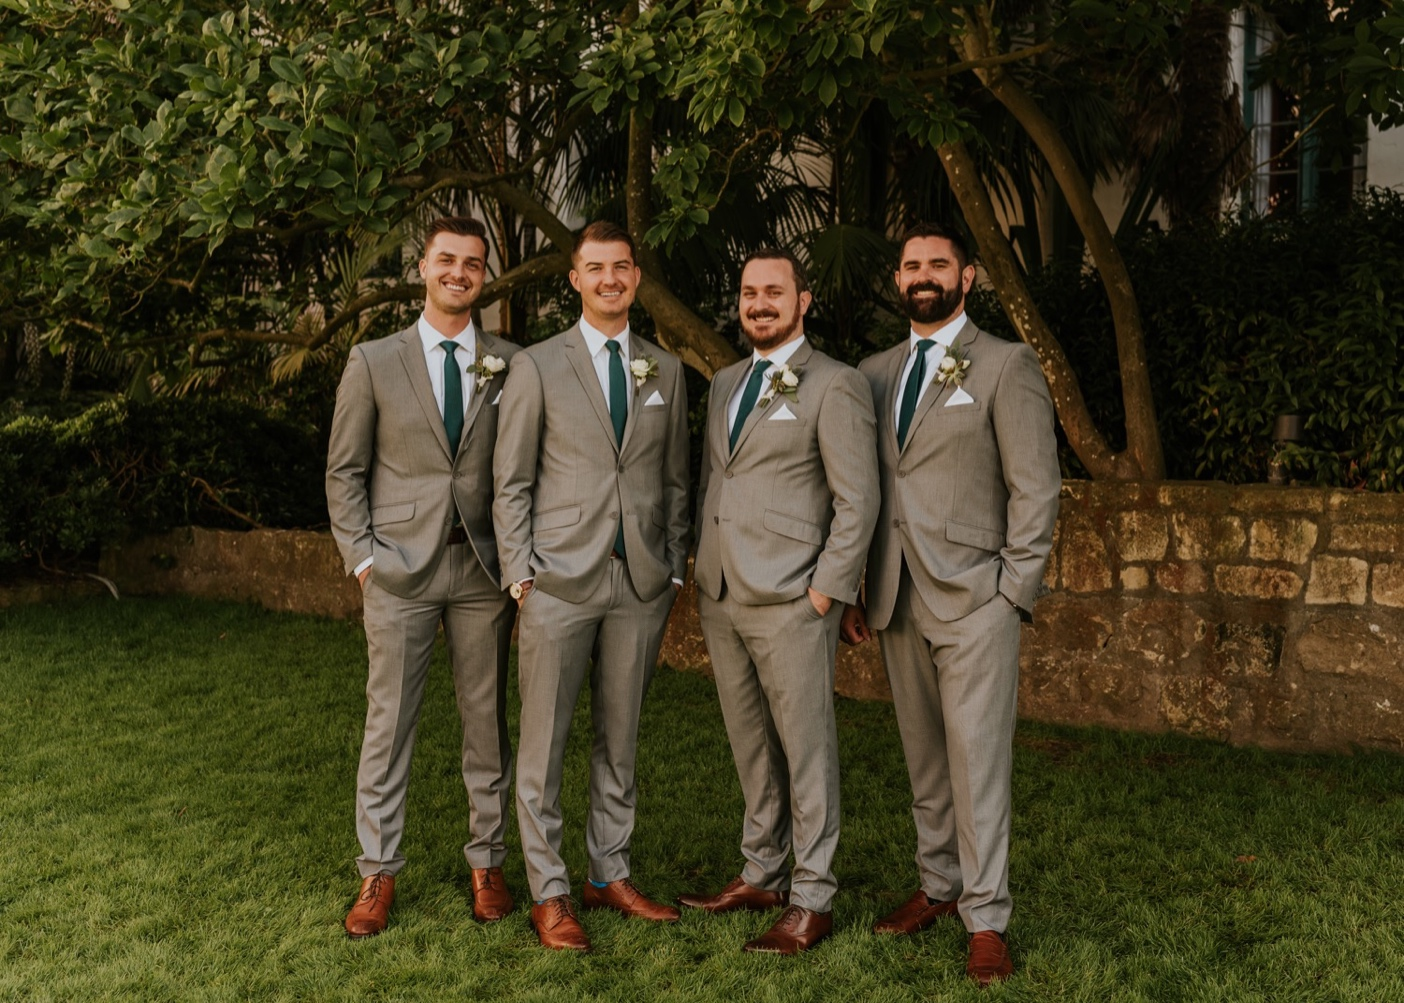 Groomsmen with Groom on outdoor lawn. Santa Barbara Courthouse Wedding.